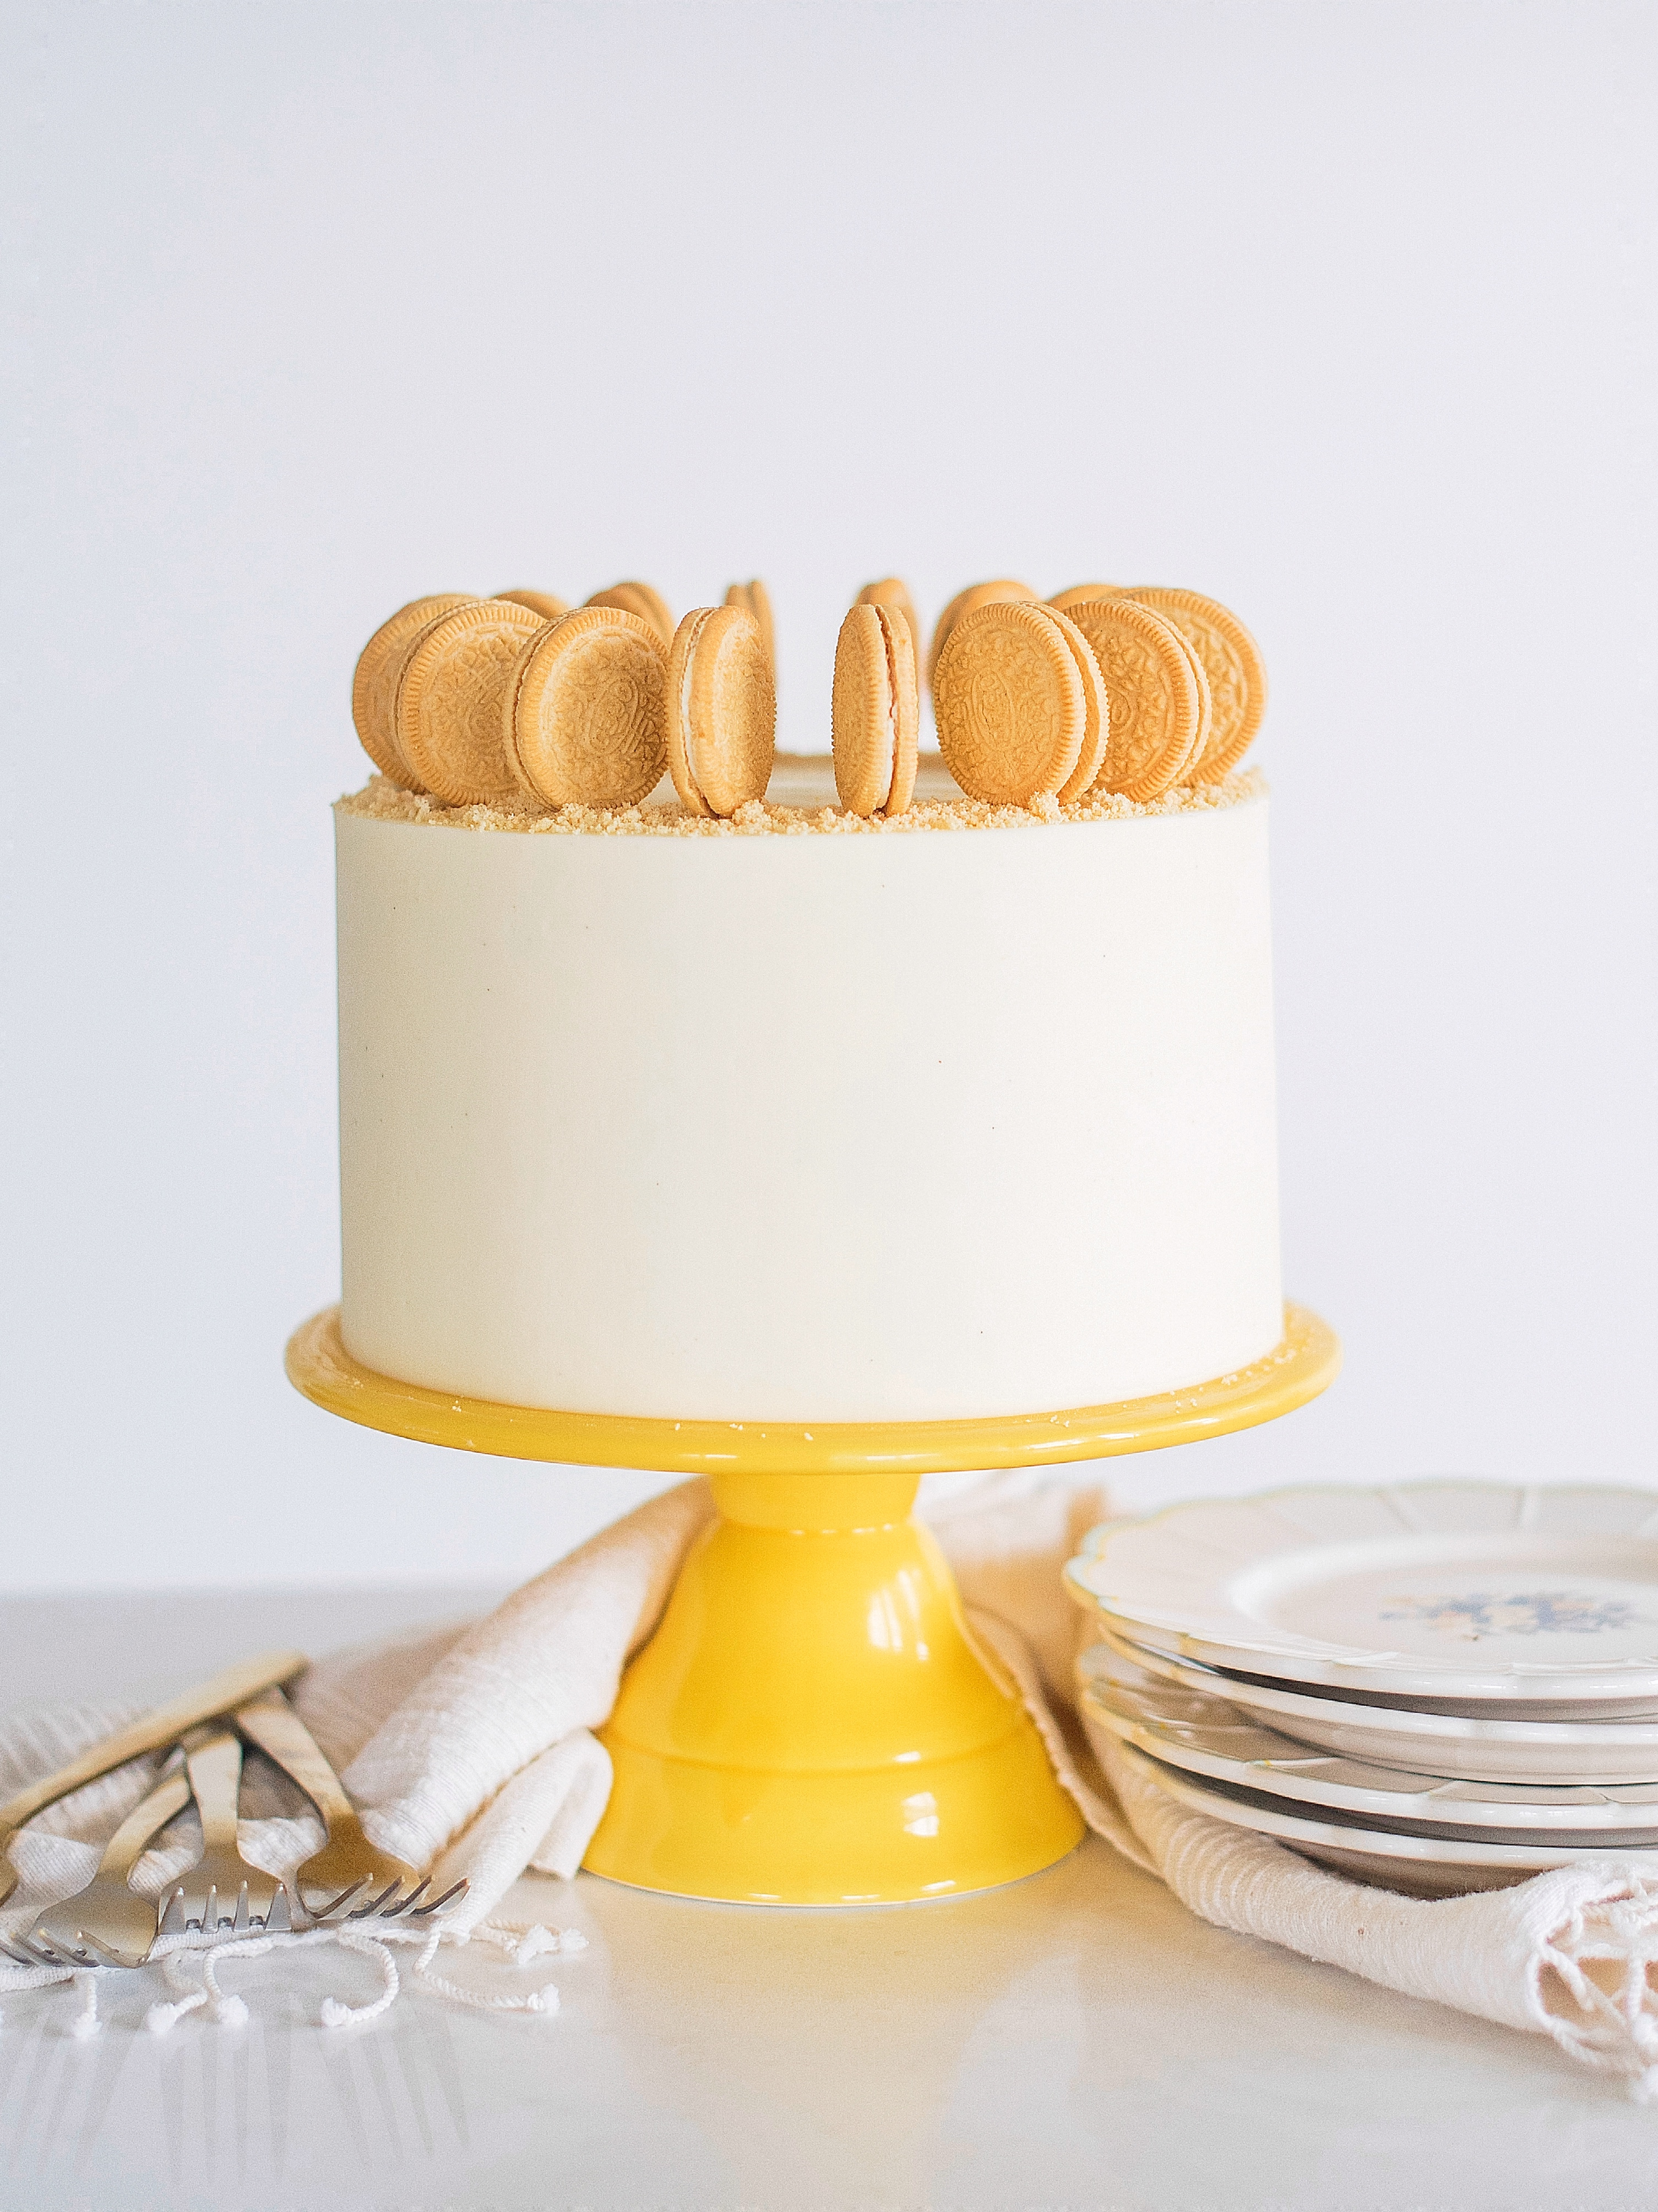 Golden Oreo Cake: ultra moist vanilla cake layers, filled with a whipped cream cheese and Golden Oreo filling, and vanilla buttercream #cakebycourtney #cakerecipe #goldenoreo #goldenoreocake #oreocake